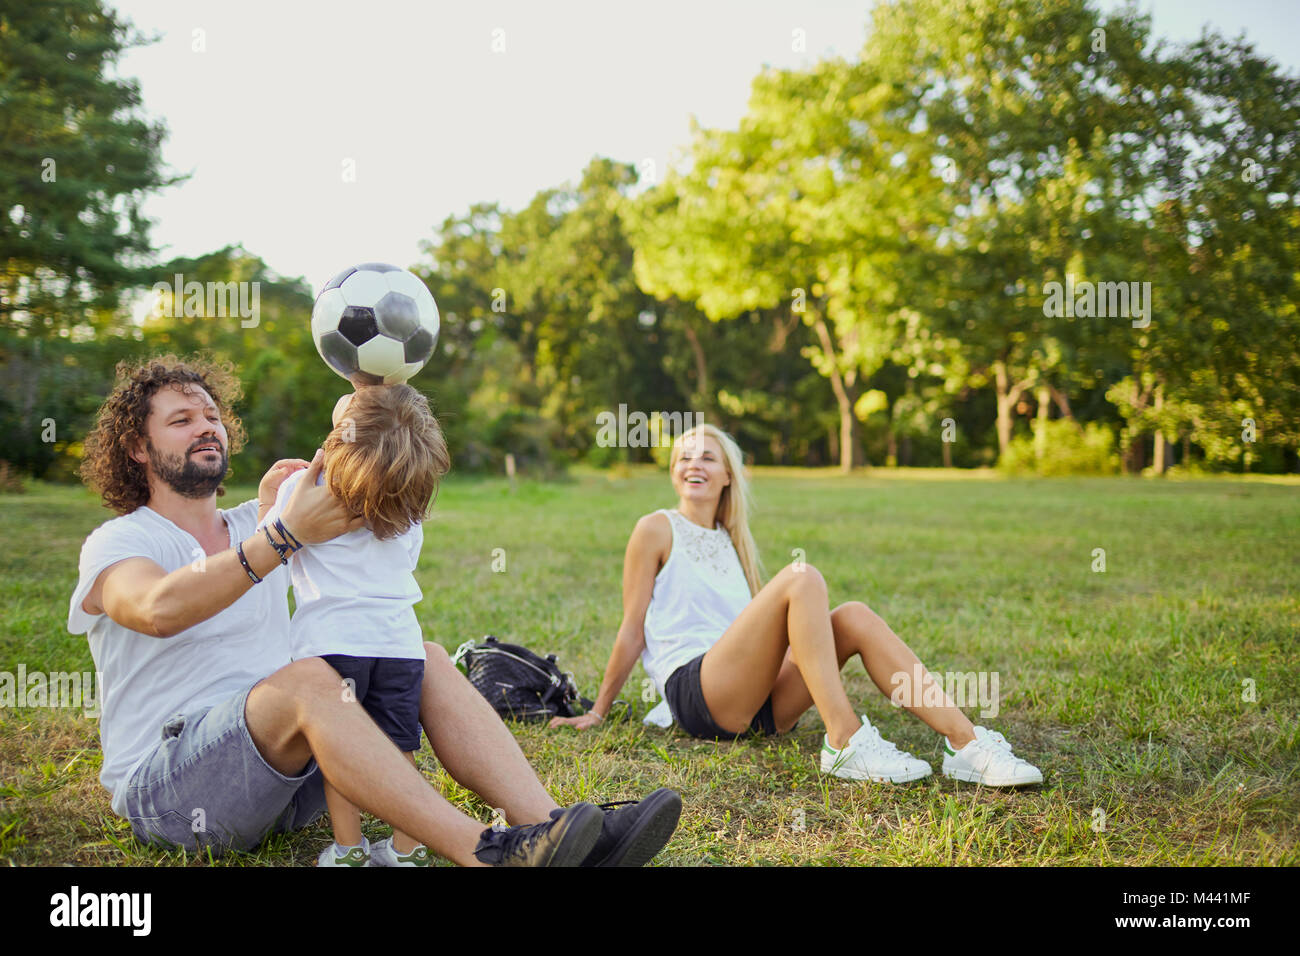 Family playing with a ball in the park.  - Stock Image